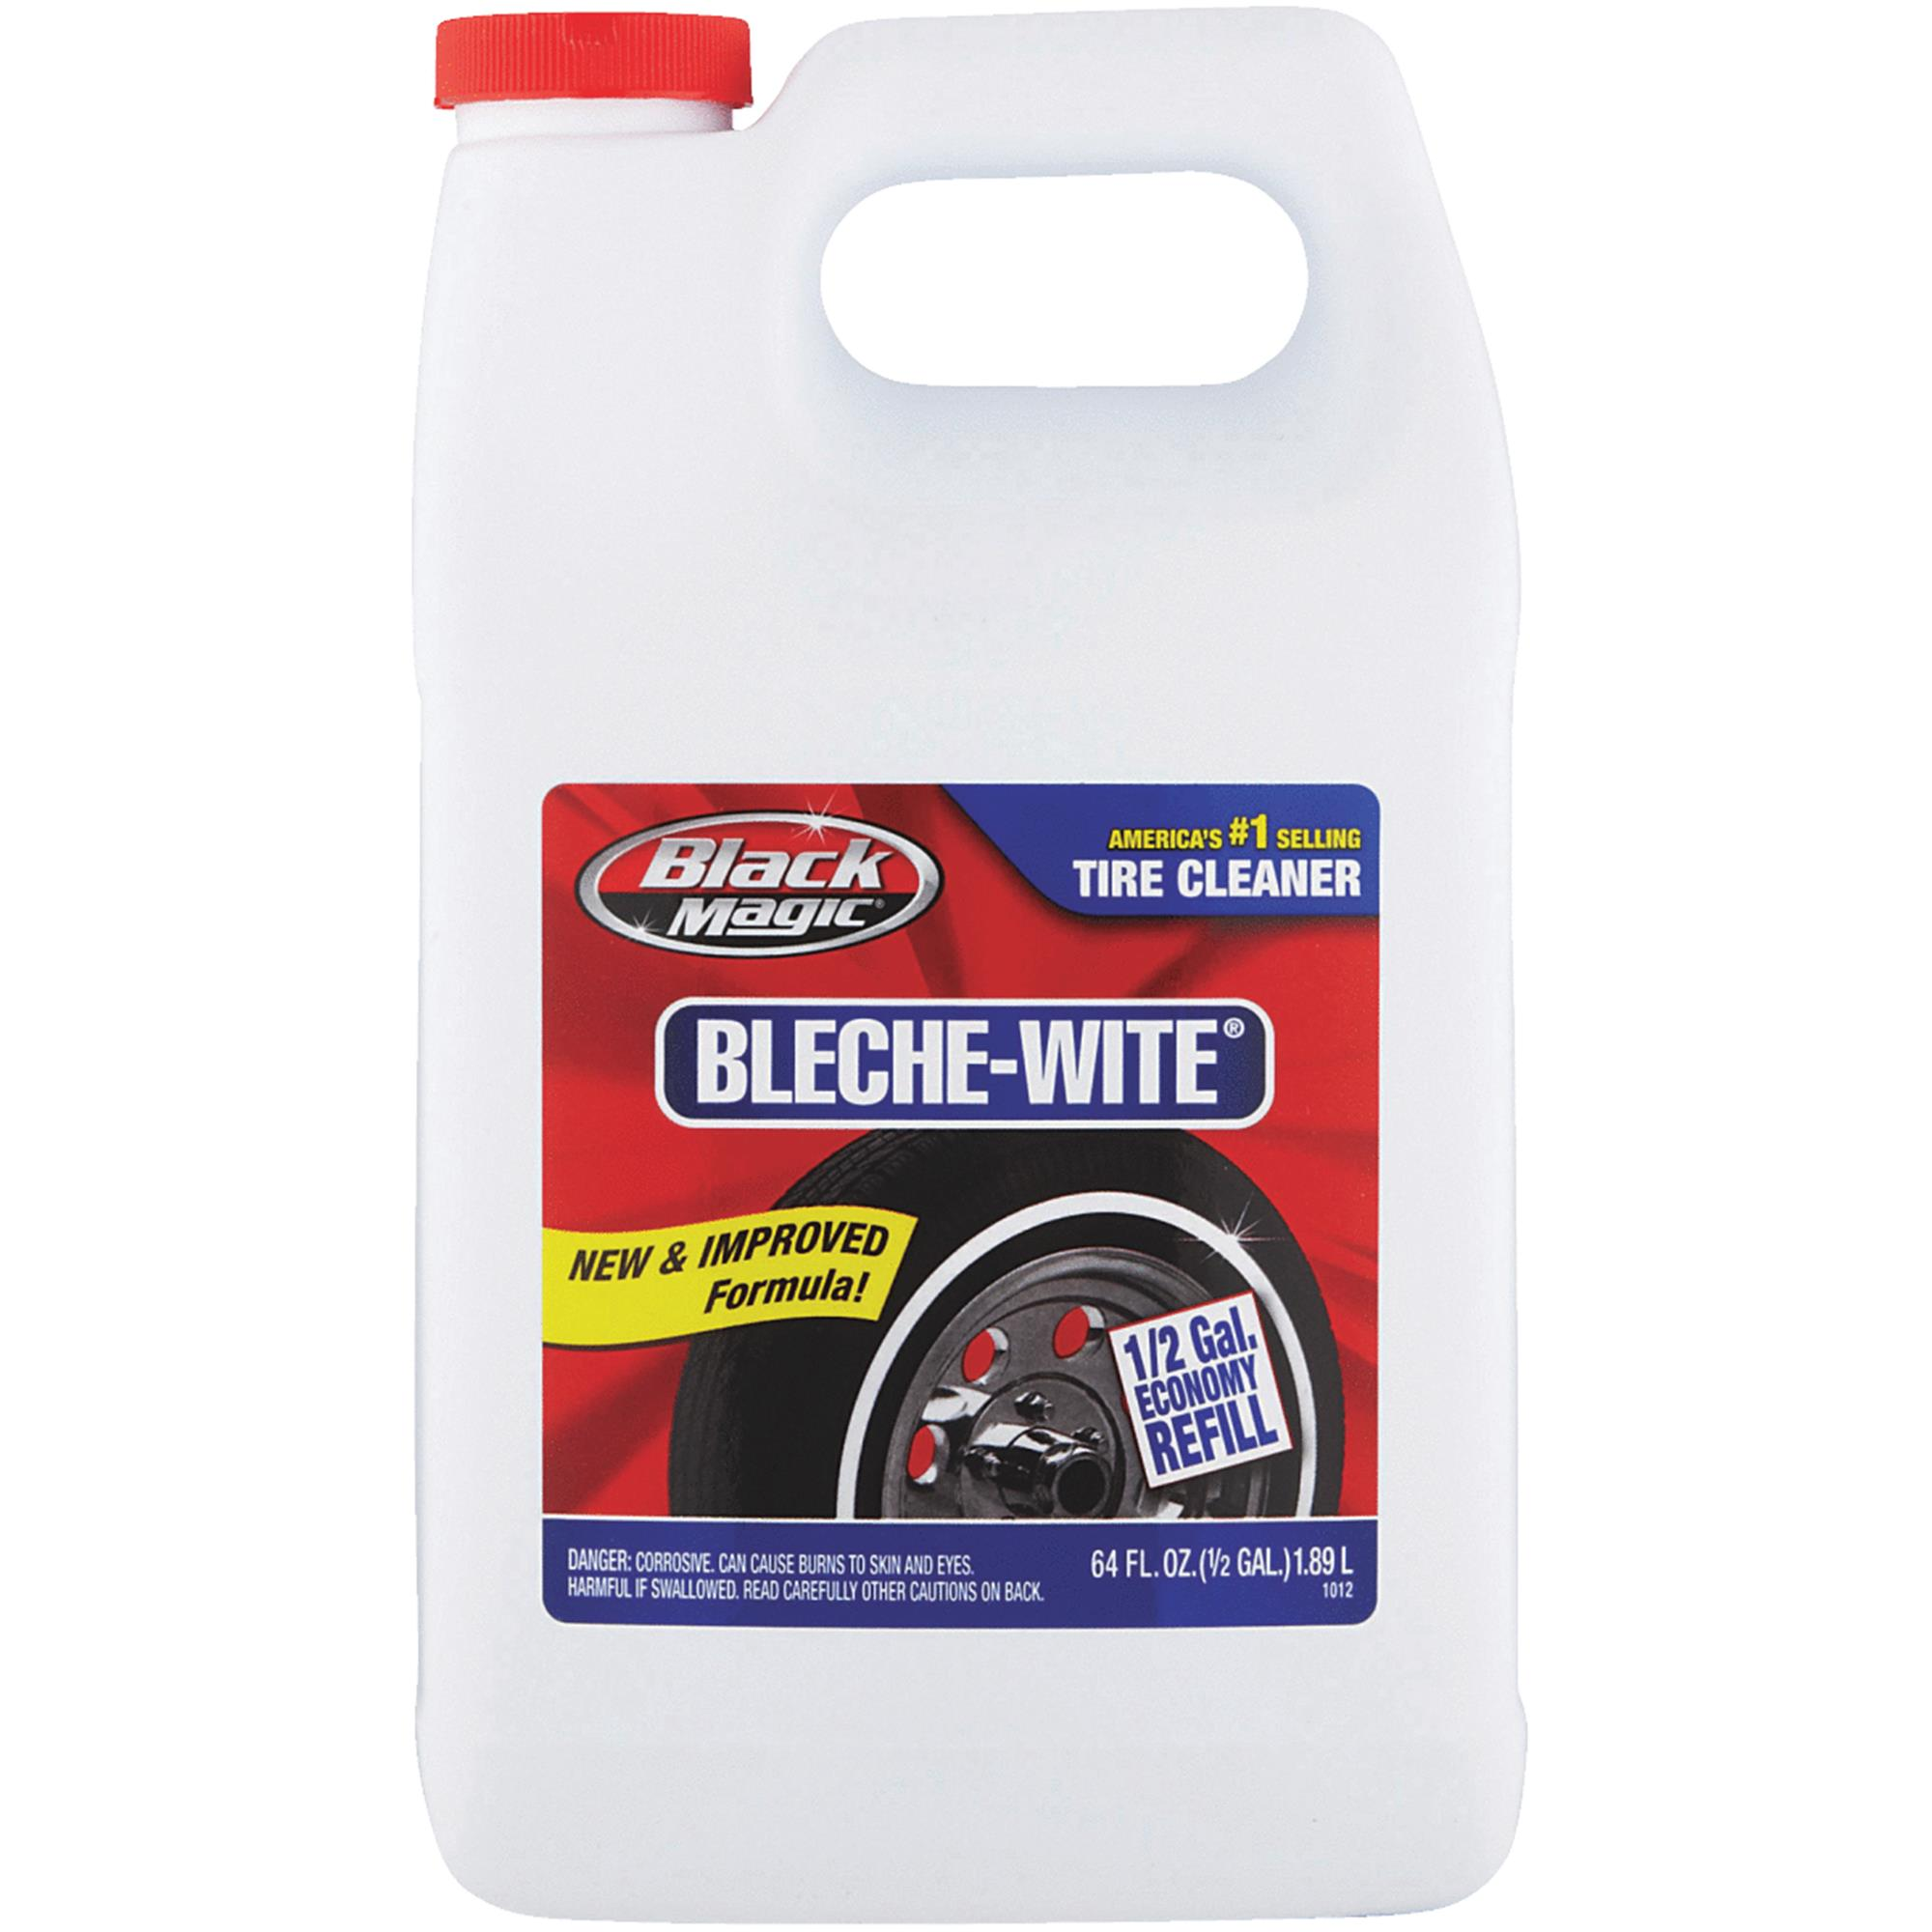 BLACK MAGIC BLECHE-WITE Tire Cleaner